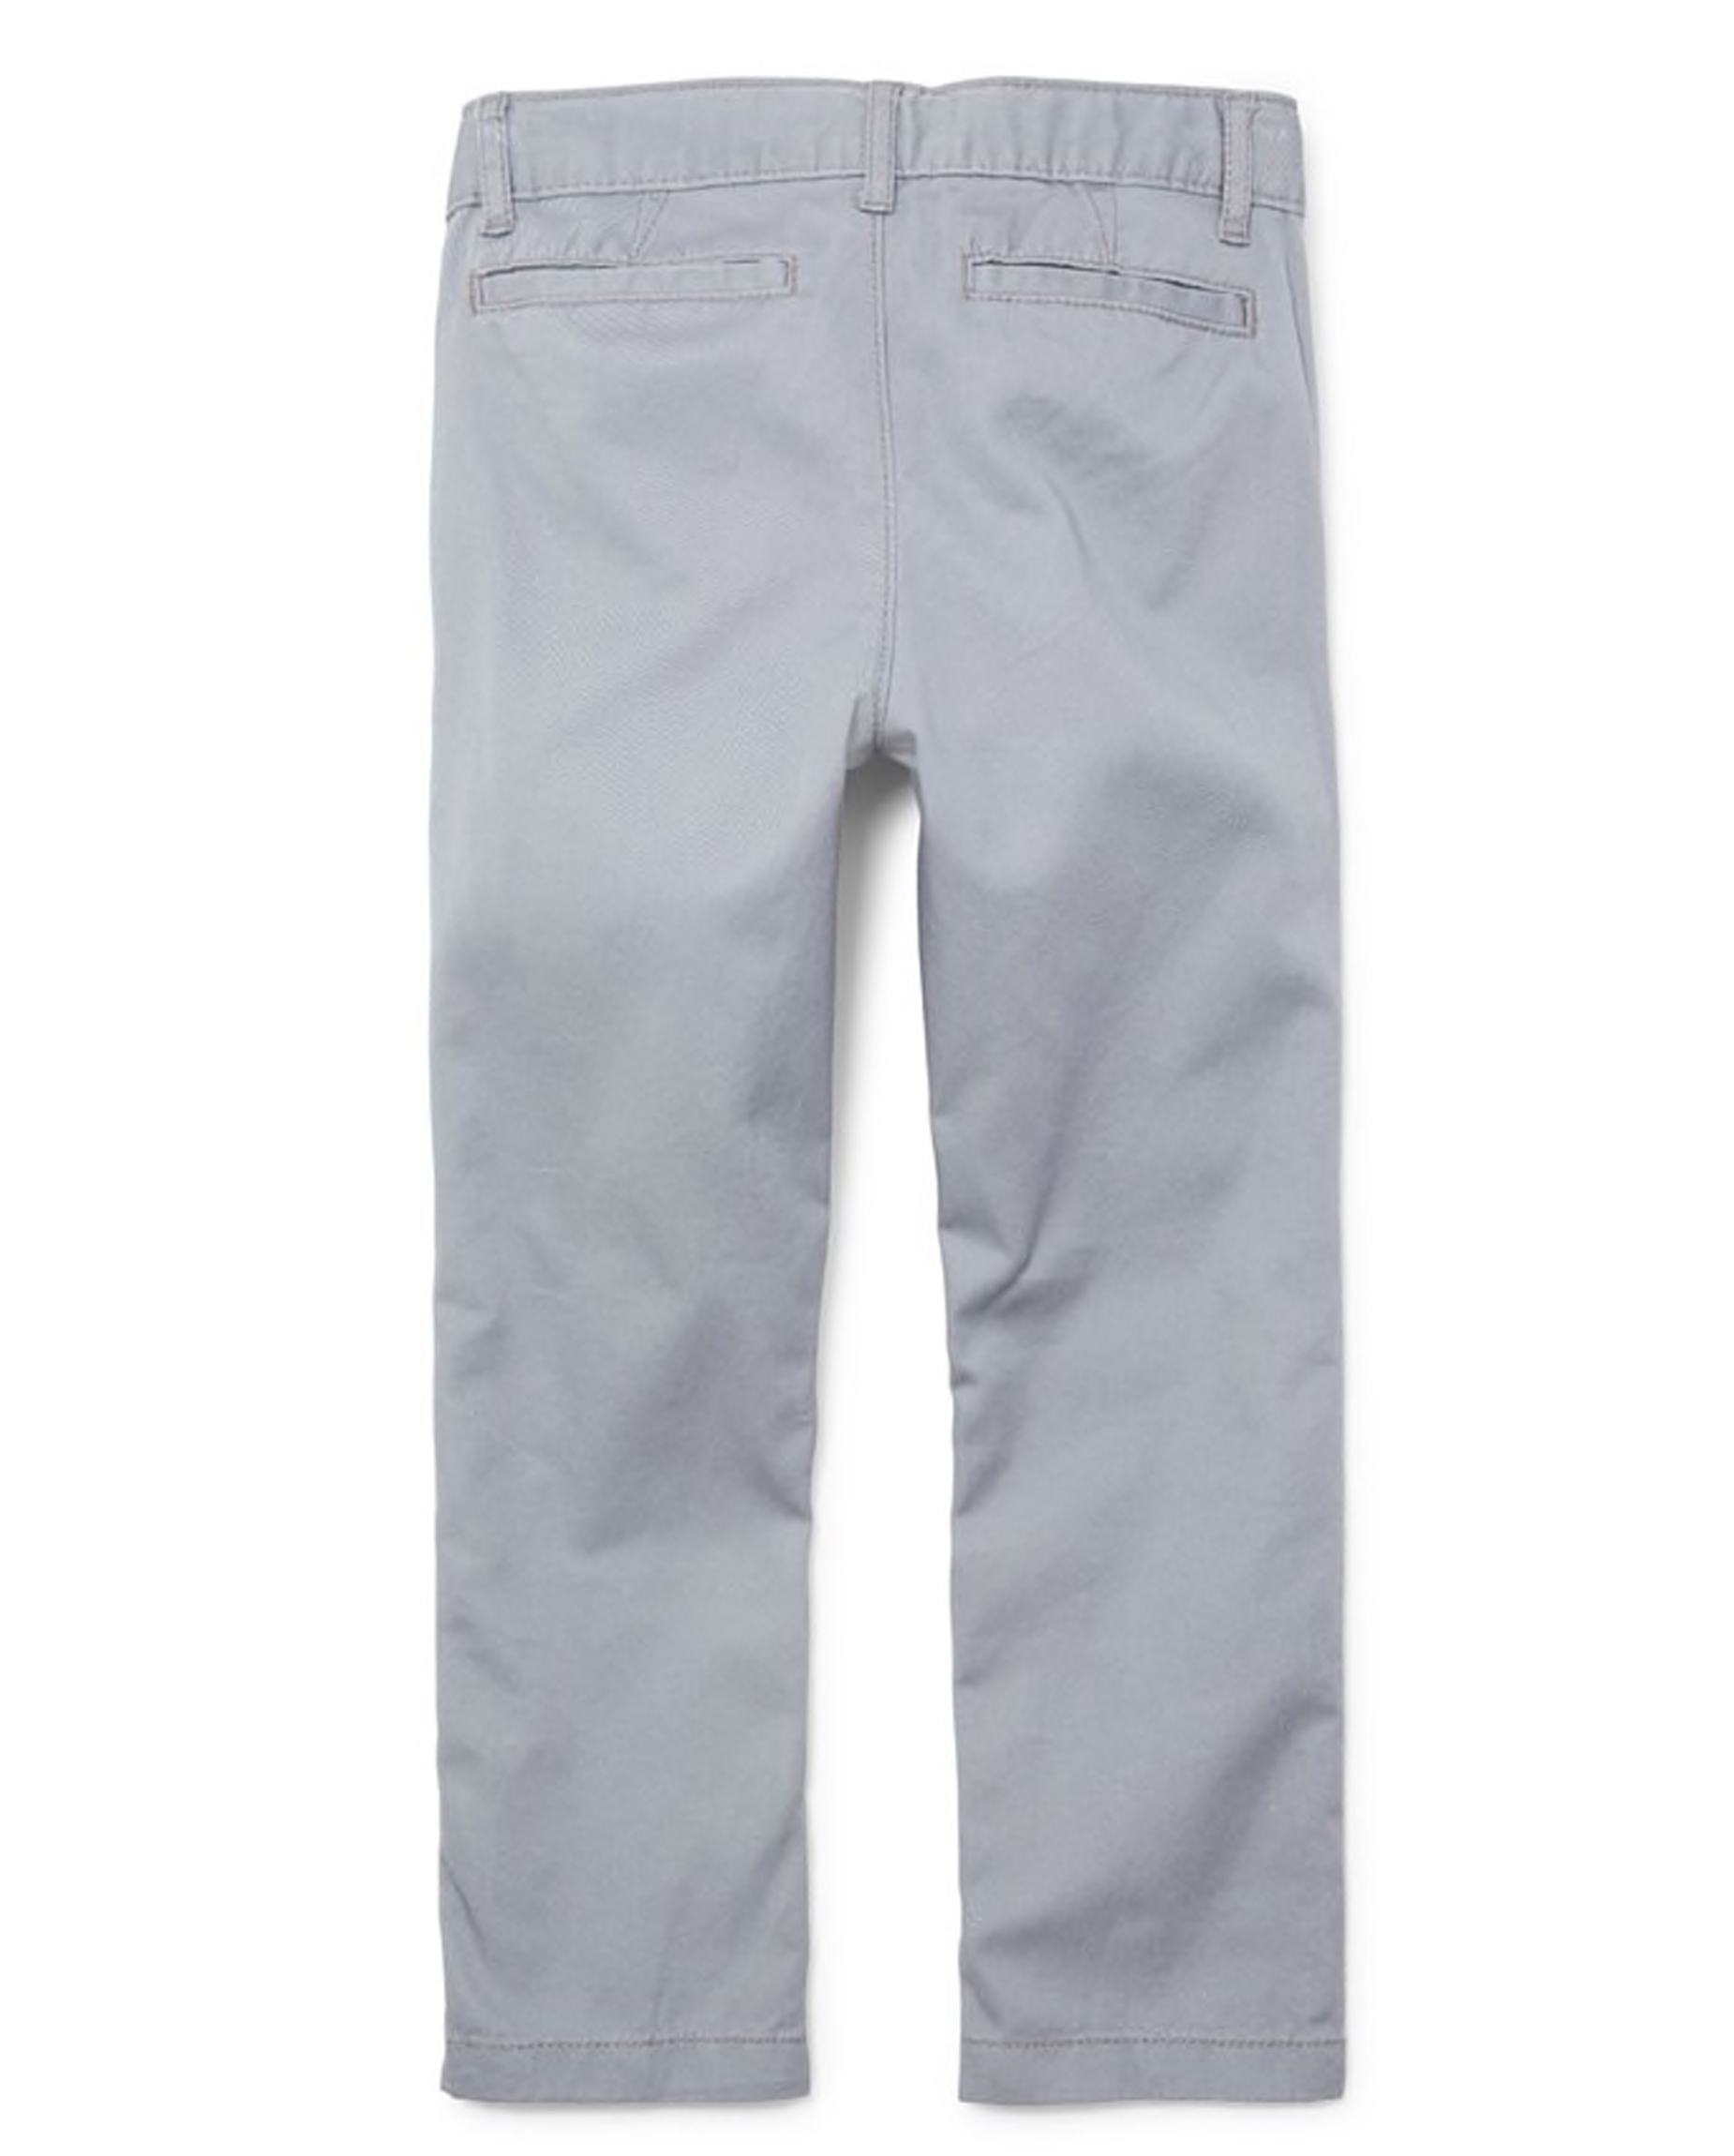 5T The Childrens Place Little Boys and Toddler Chino Pant Flax